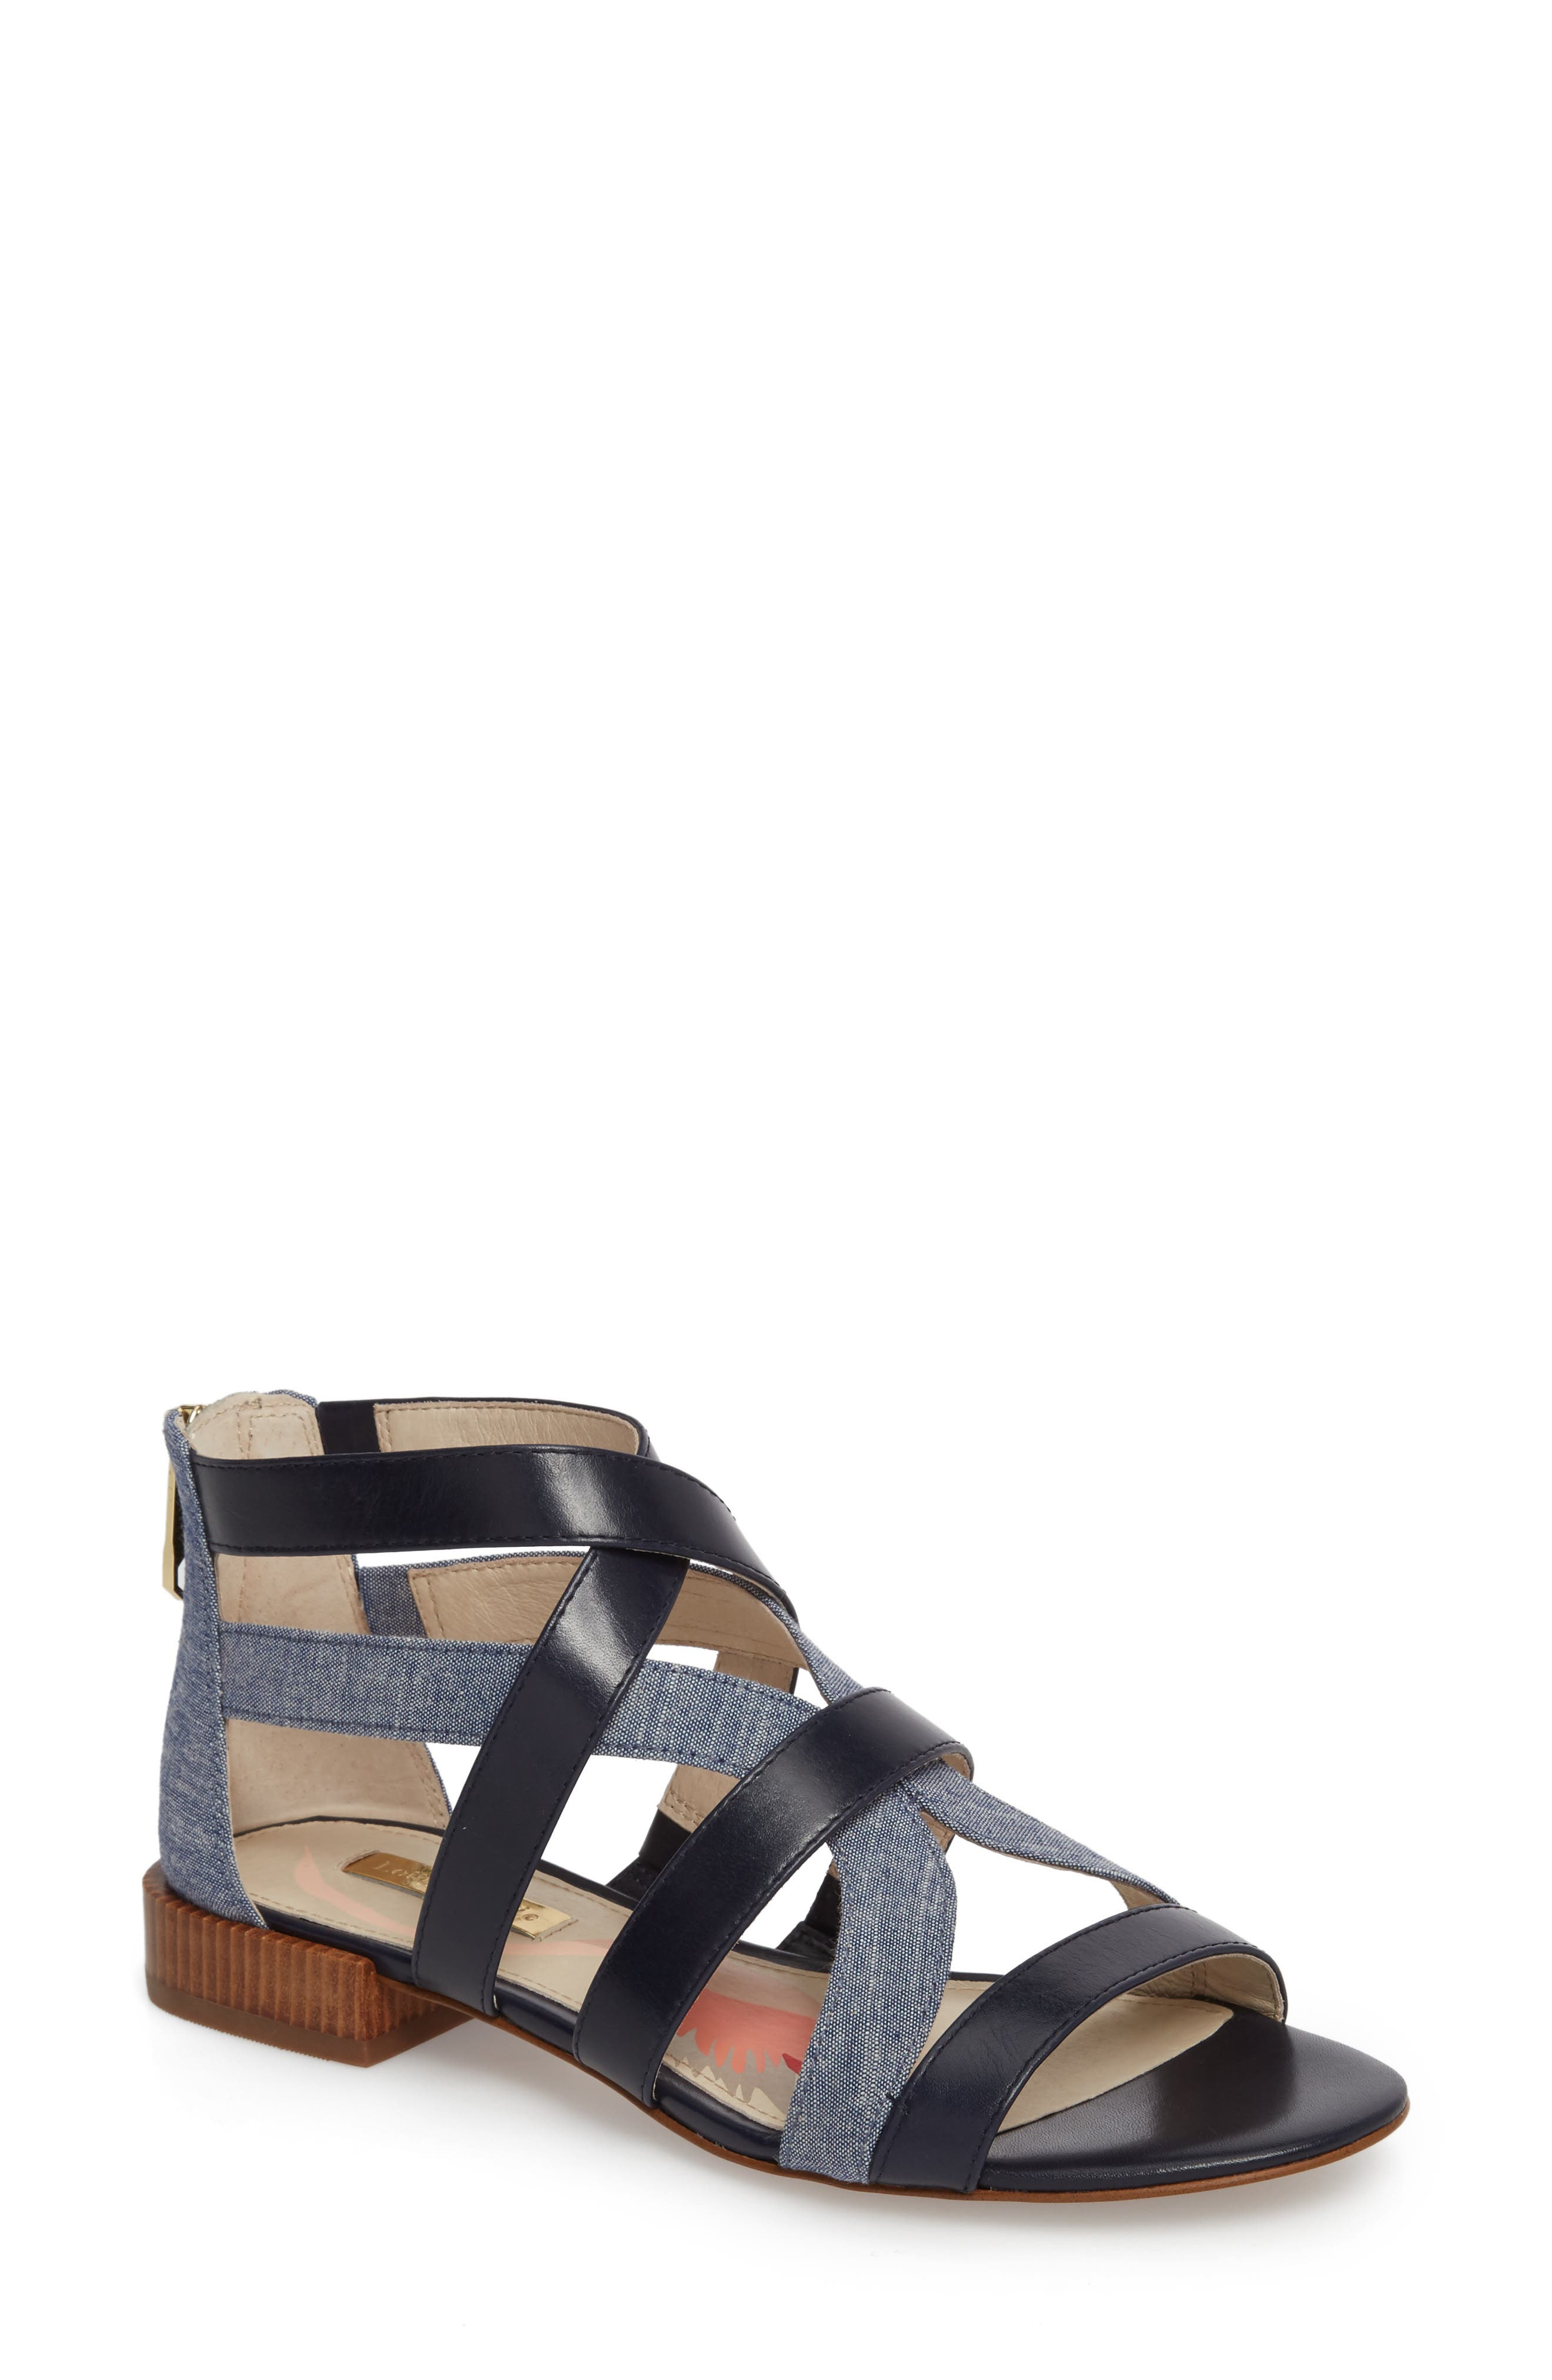 Almeyna Strappy Sandal,                         Main,                         color, Blue Moon Leather